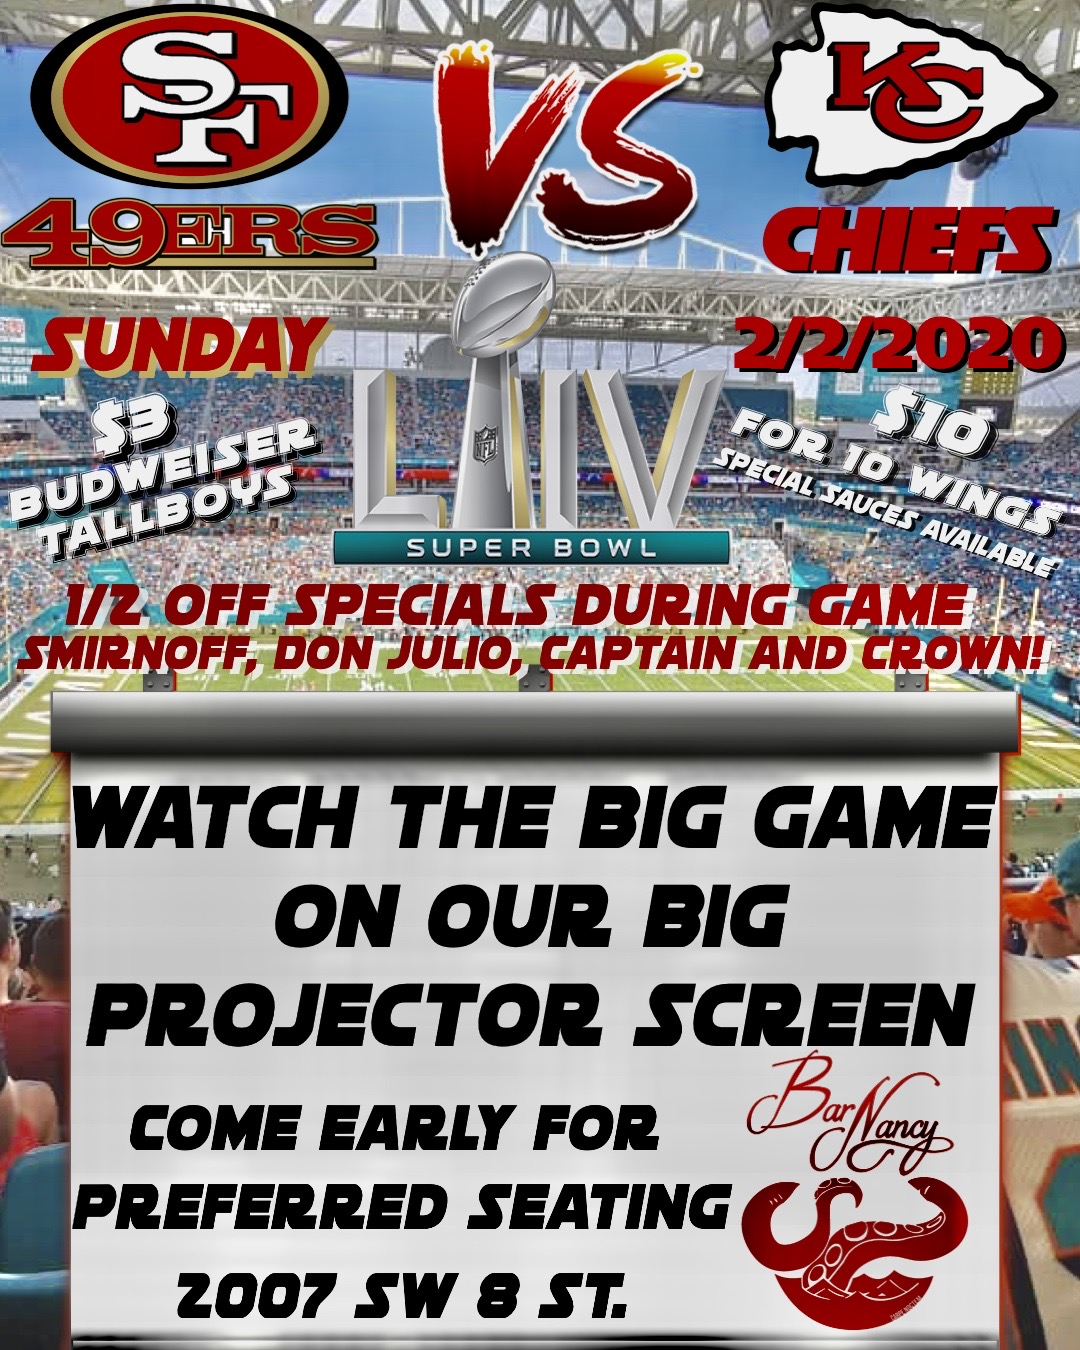 Super Bowl LIV! Watch the Game on our Giant Screen!